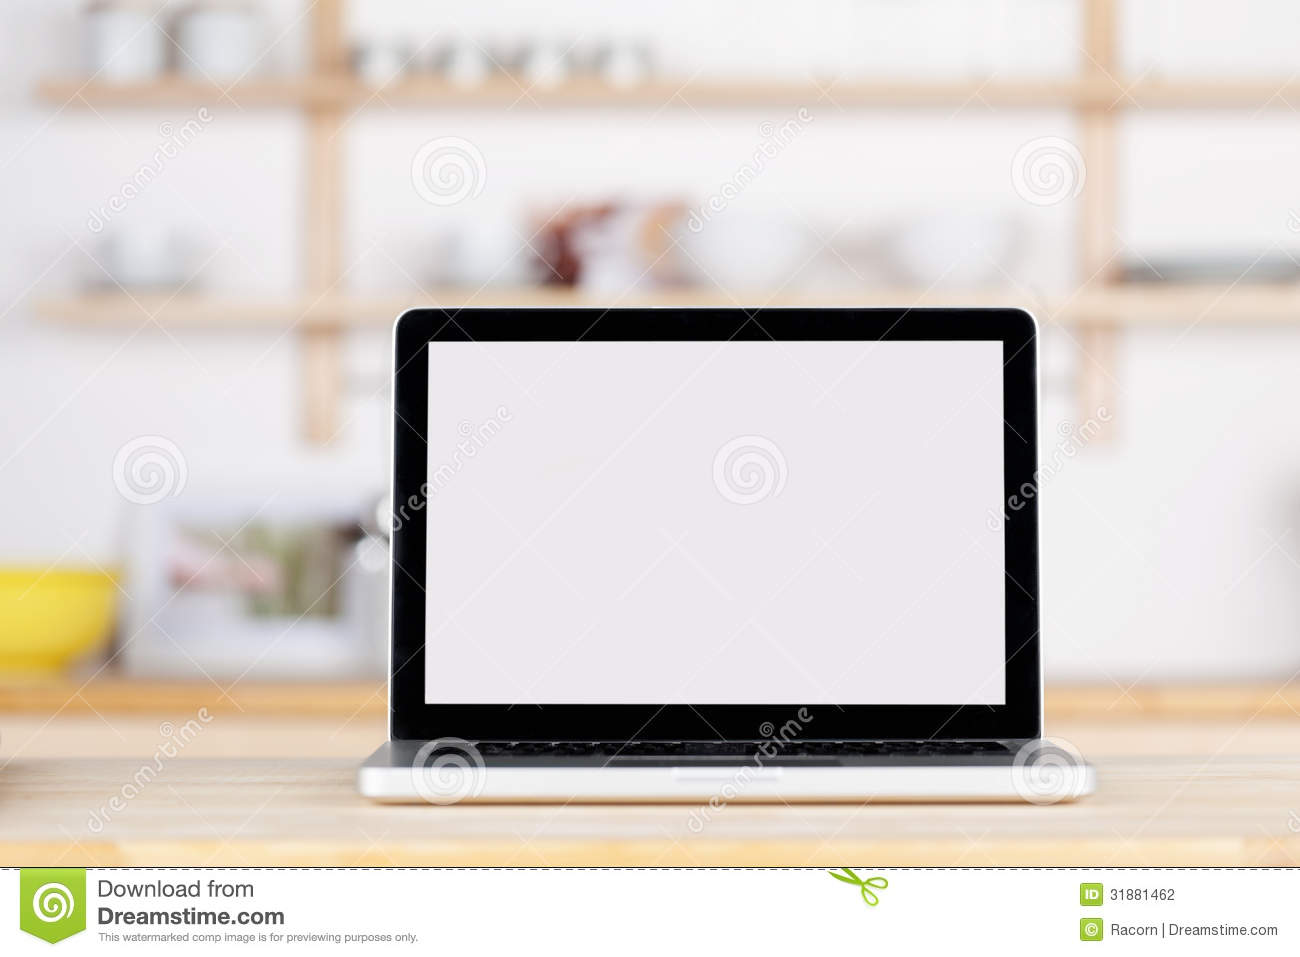 Closeup of laptop with blank screen on kitchen counter